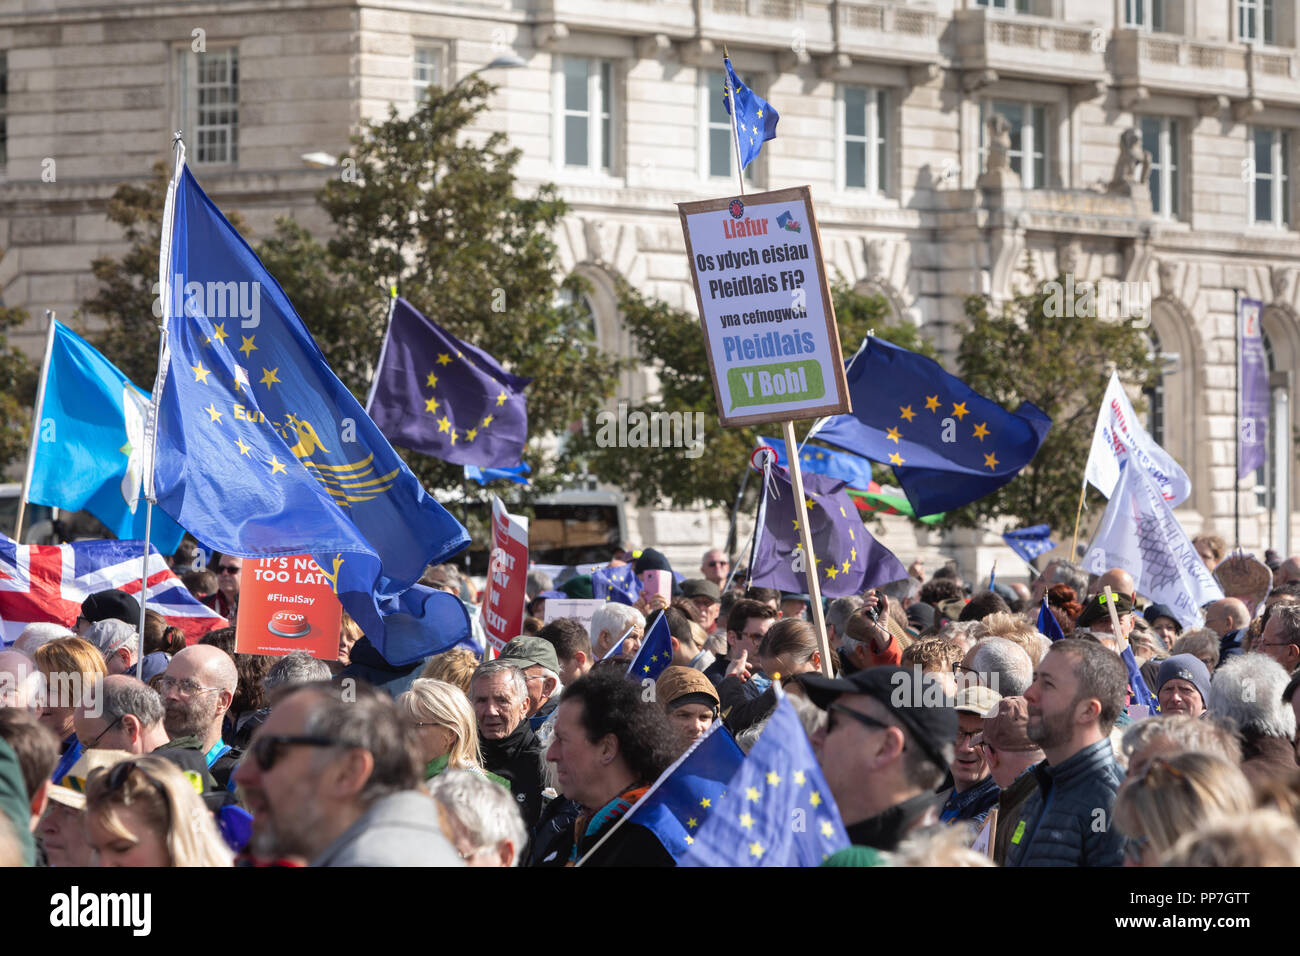 Liverpool, UK. Sunday 23rd September 2018. The People's Vote march. © Phil Portus / Alamy Live News - Stock Image